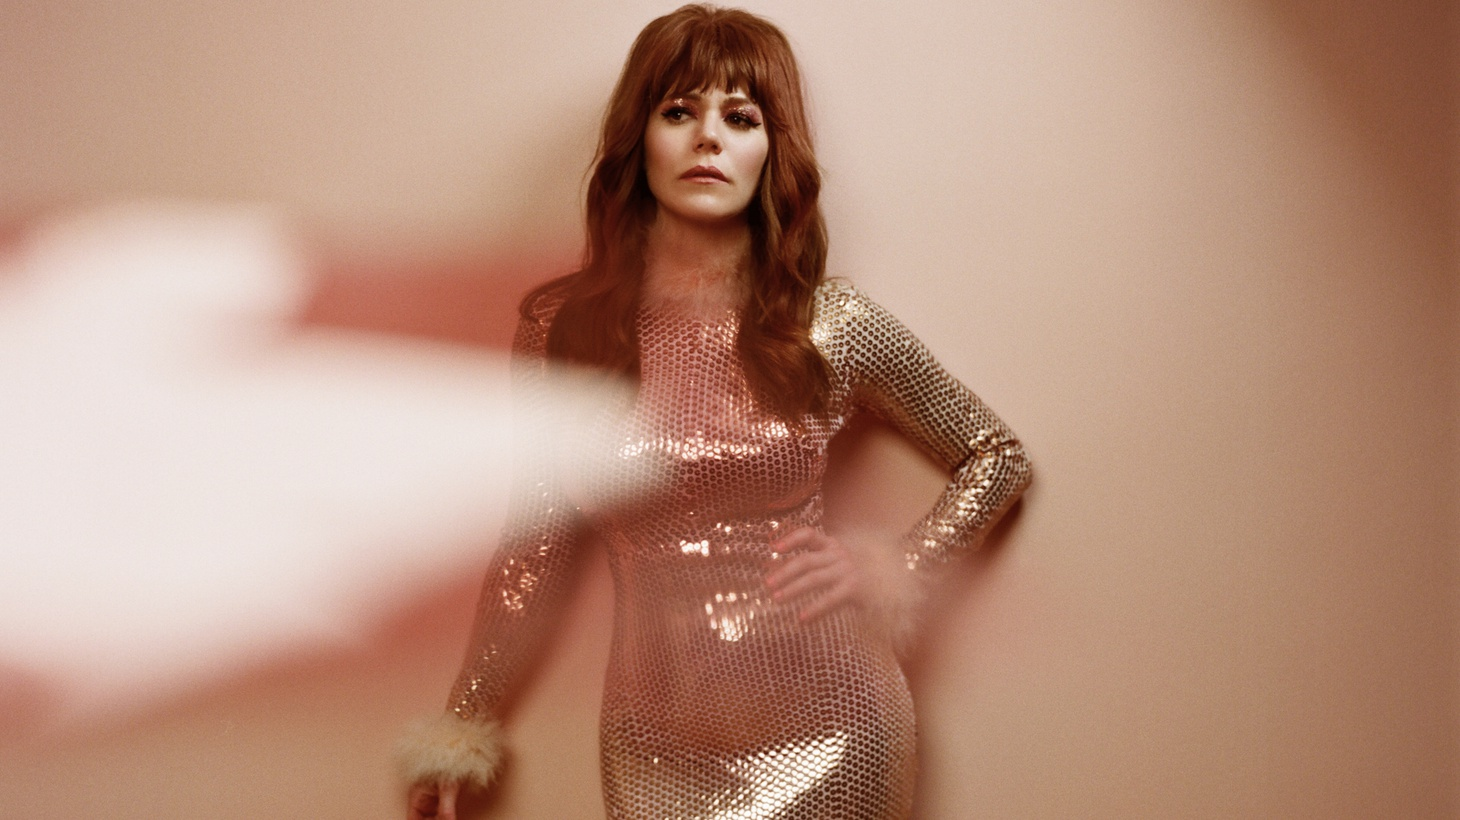 """Jenny Lewis' voice is as alluring as her lyrics. At times punchy and defiant, but always warm and honest. On her new album """"On The Line,"""" she delivers piano-driven songs with hints of country under tones"""